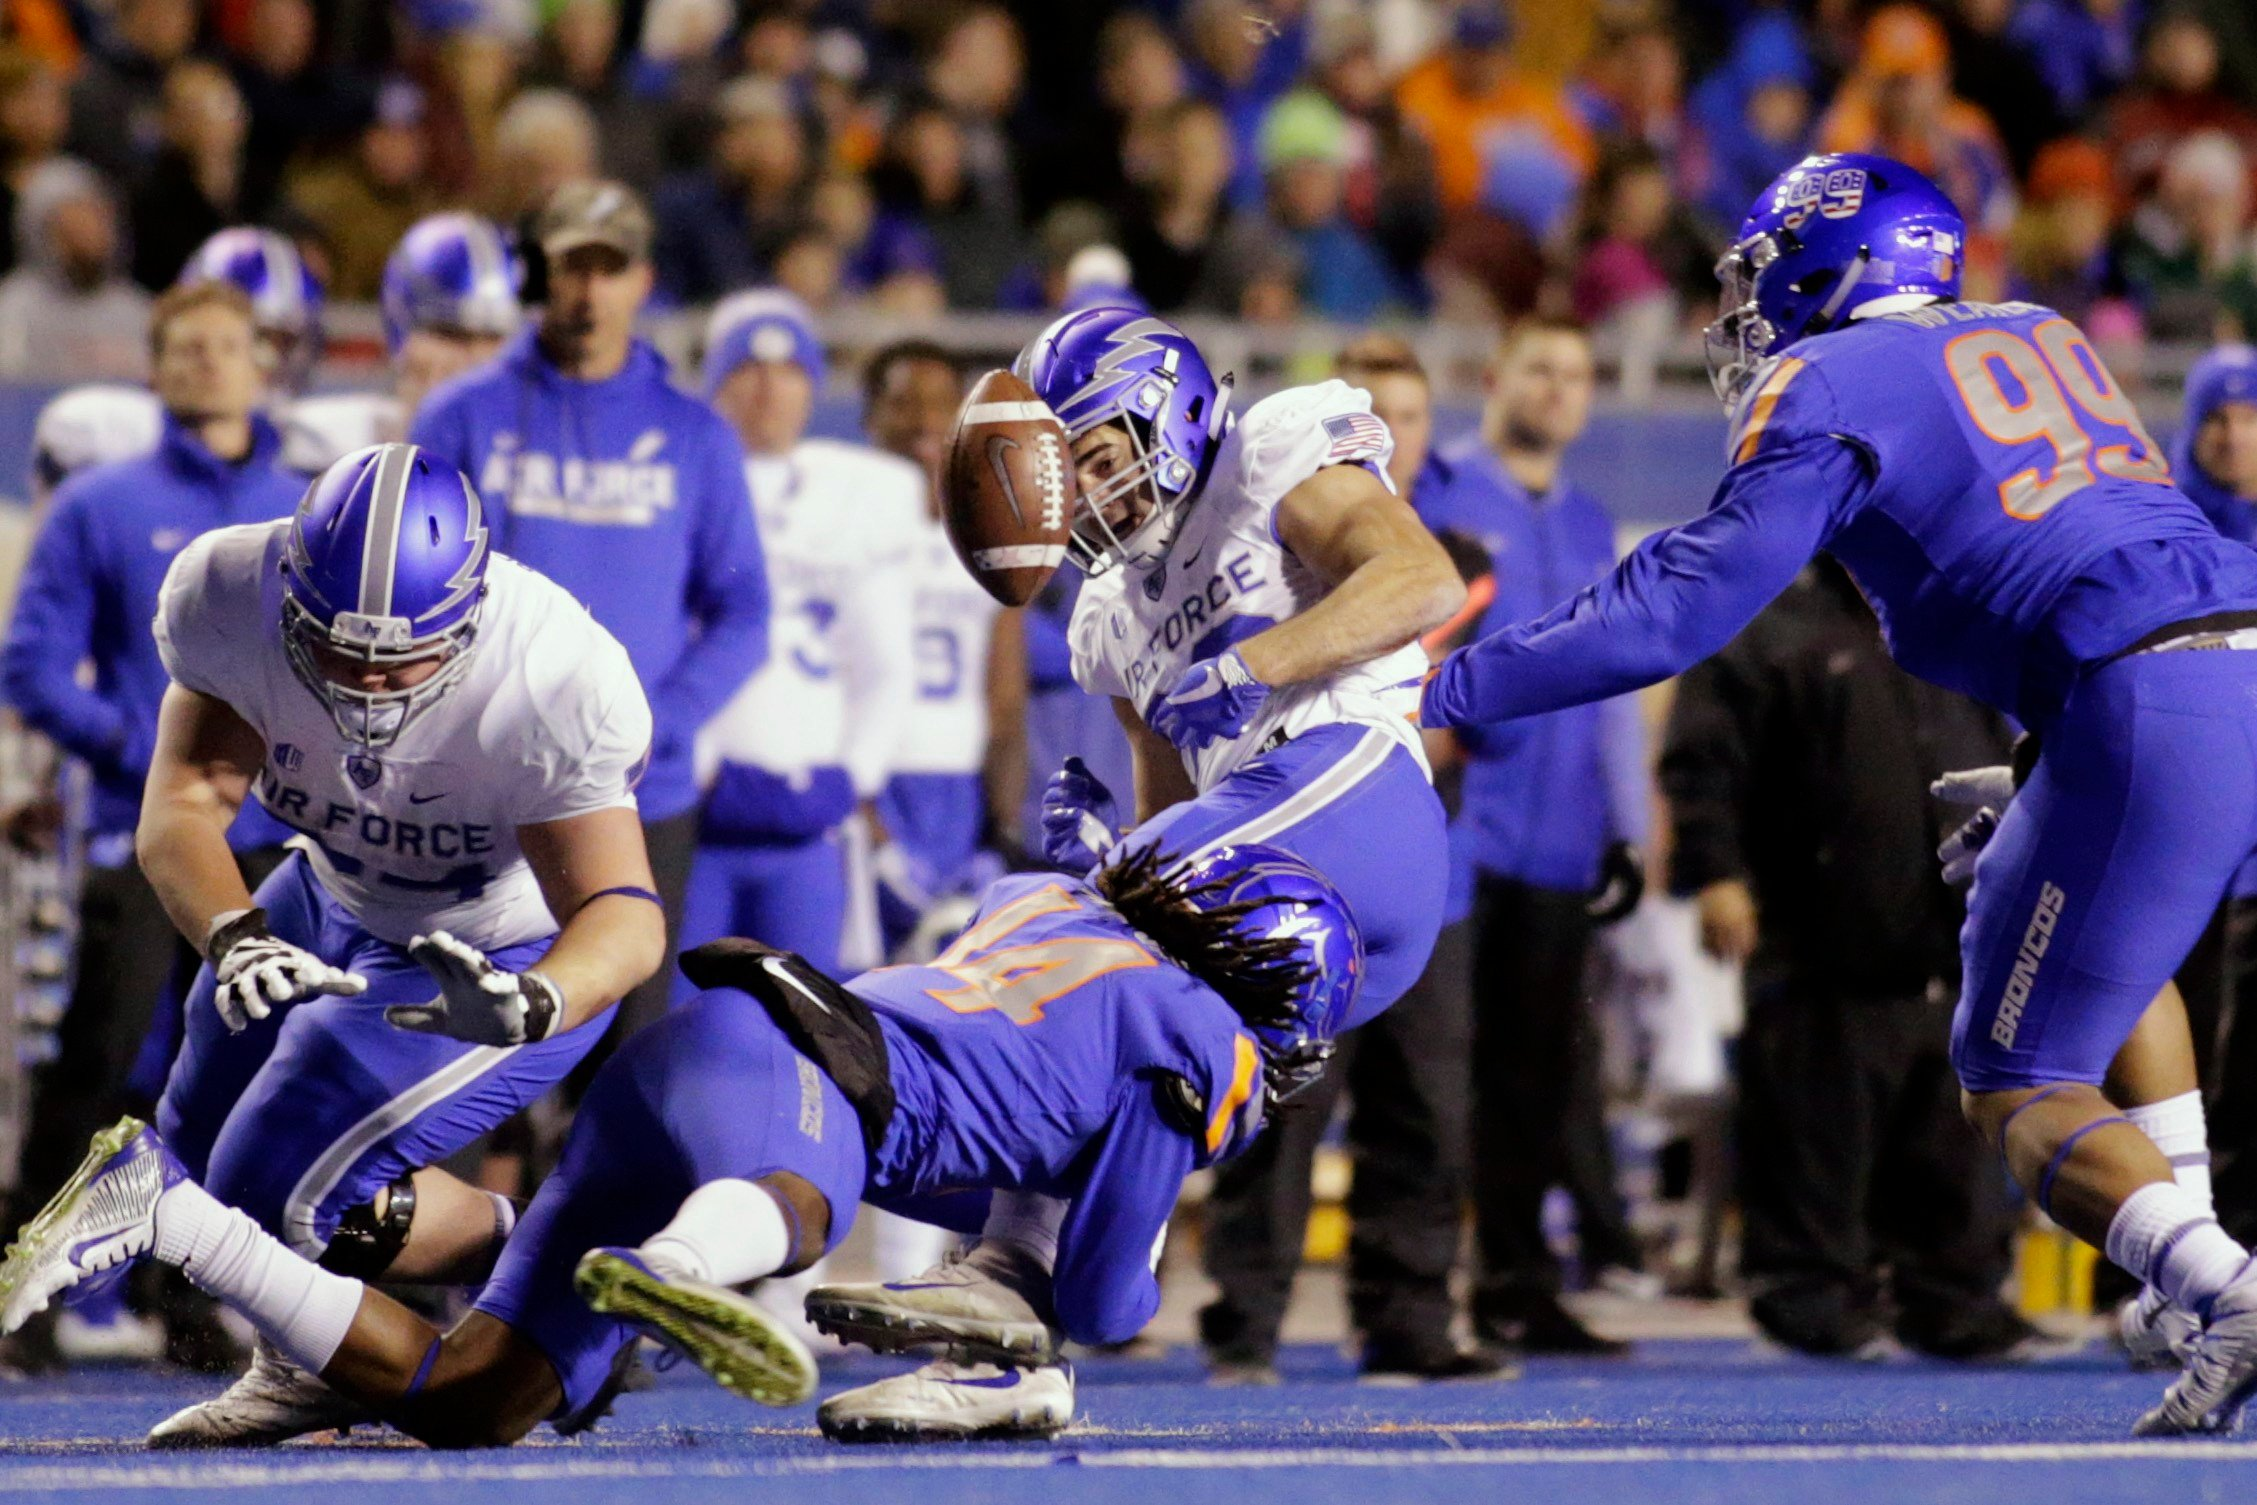 Air Force running back Tim McVey (33) fumbles the ball on a tackle by Boise State cornerback Tyler Horton (14) during the first half of an NCAA college football game in Boise, Idaho, Saturday, Nov. 18, 2017.